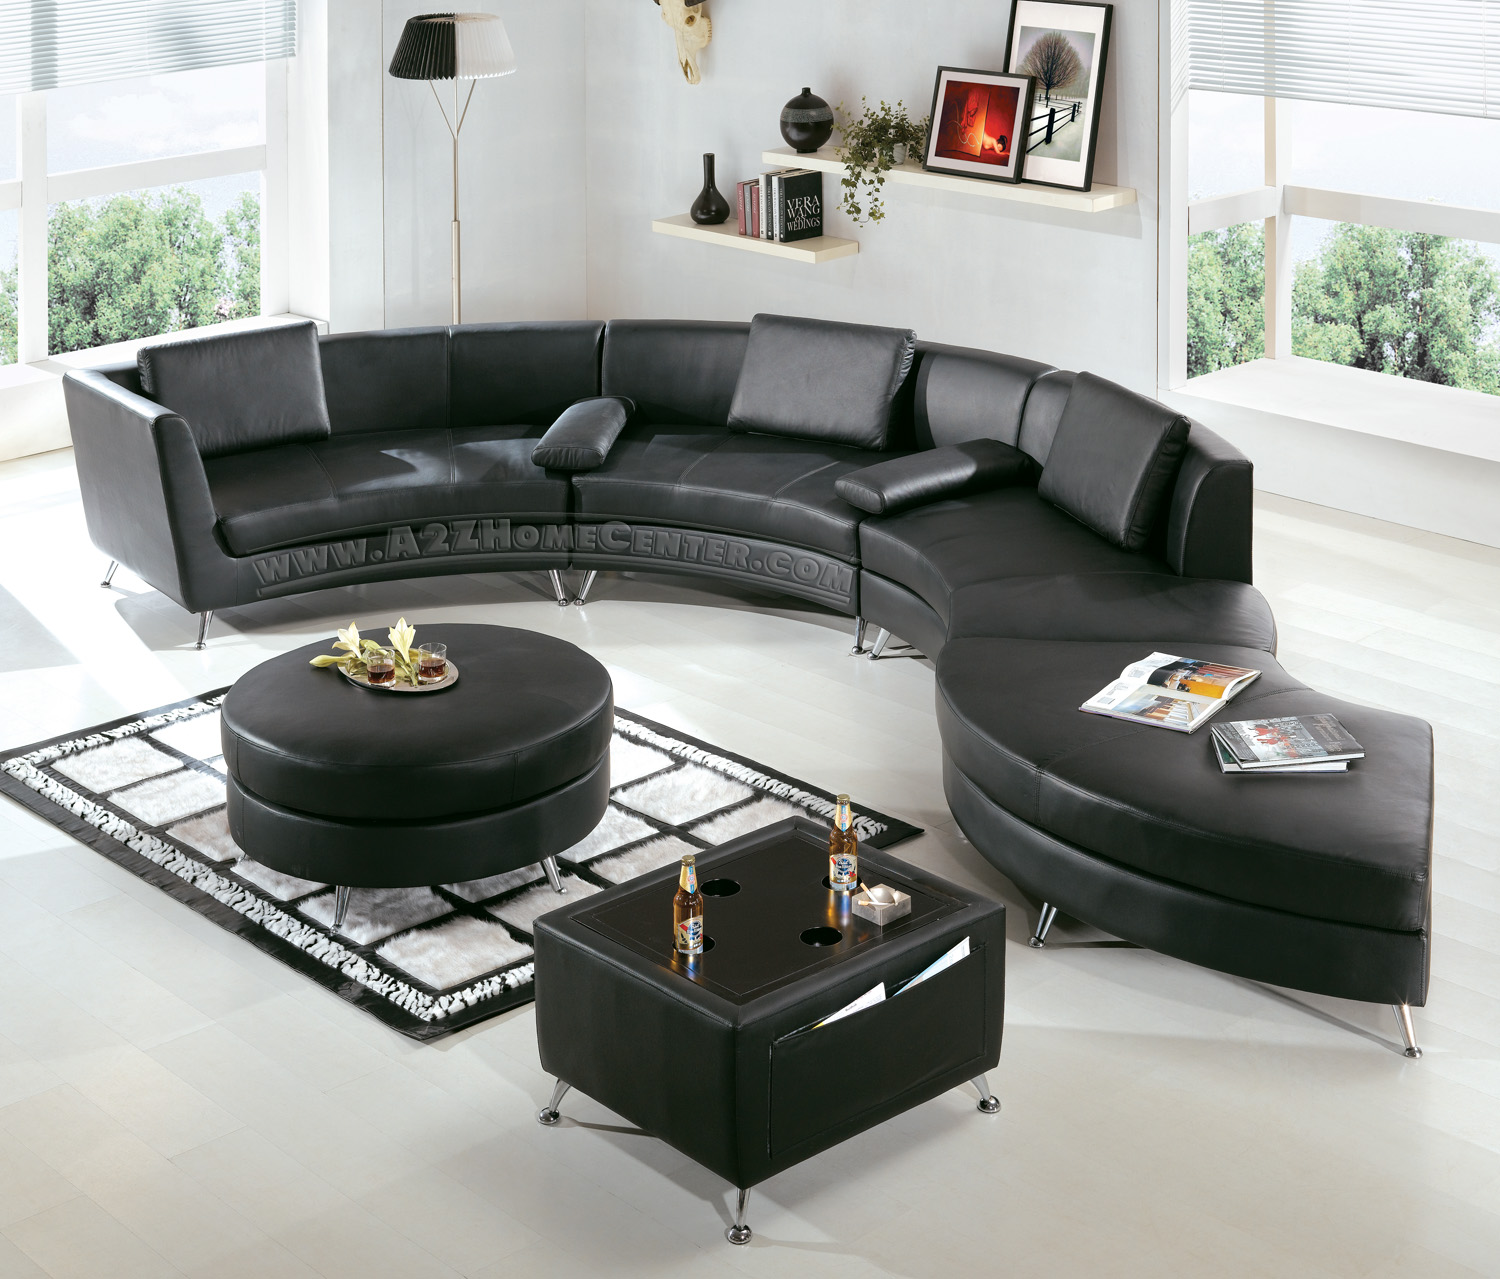 Trend Home Interior Design 2011 Modern Furniture Sofa Variety Ideas